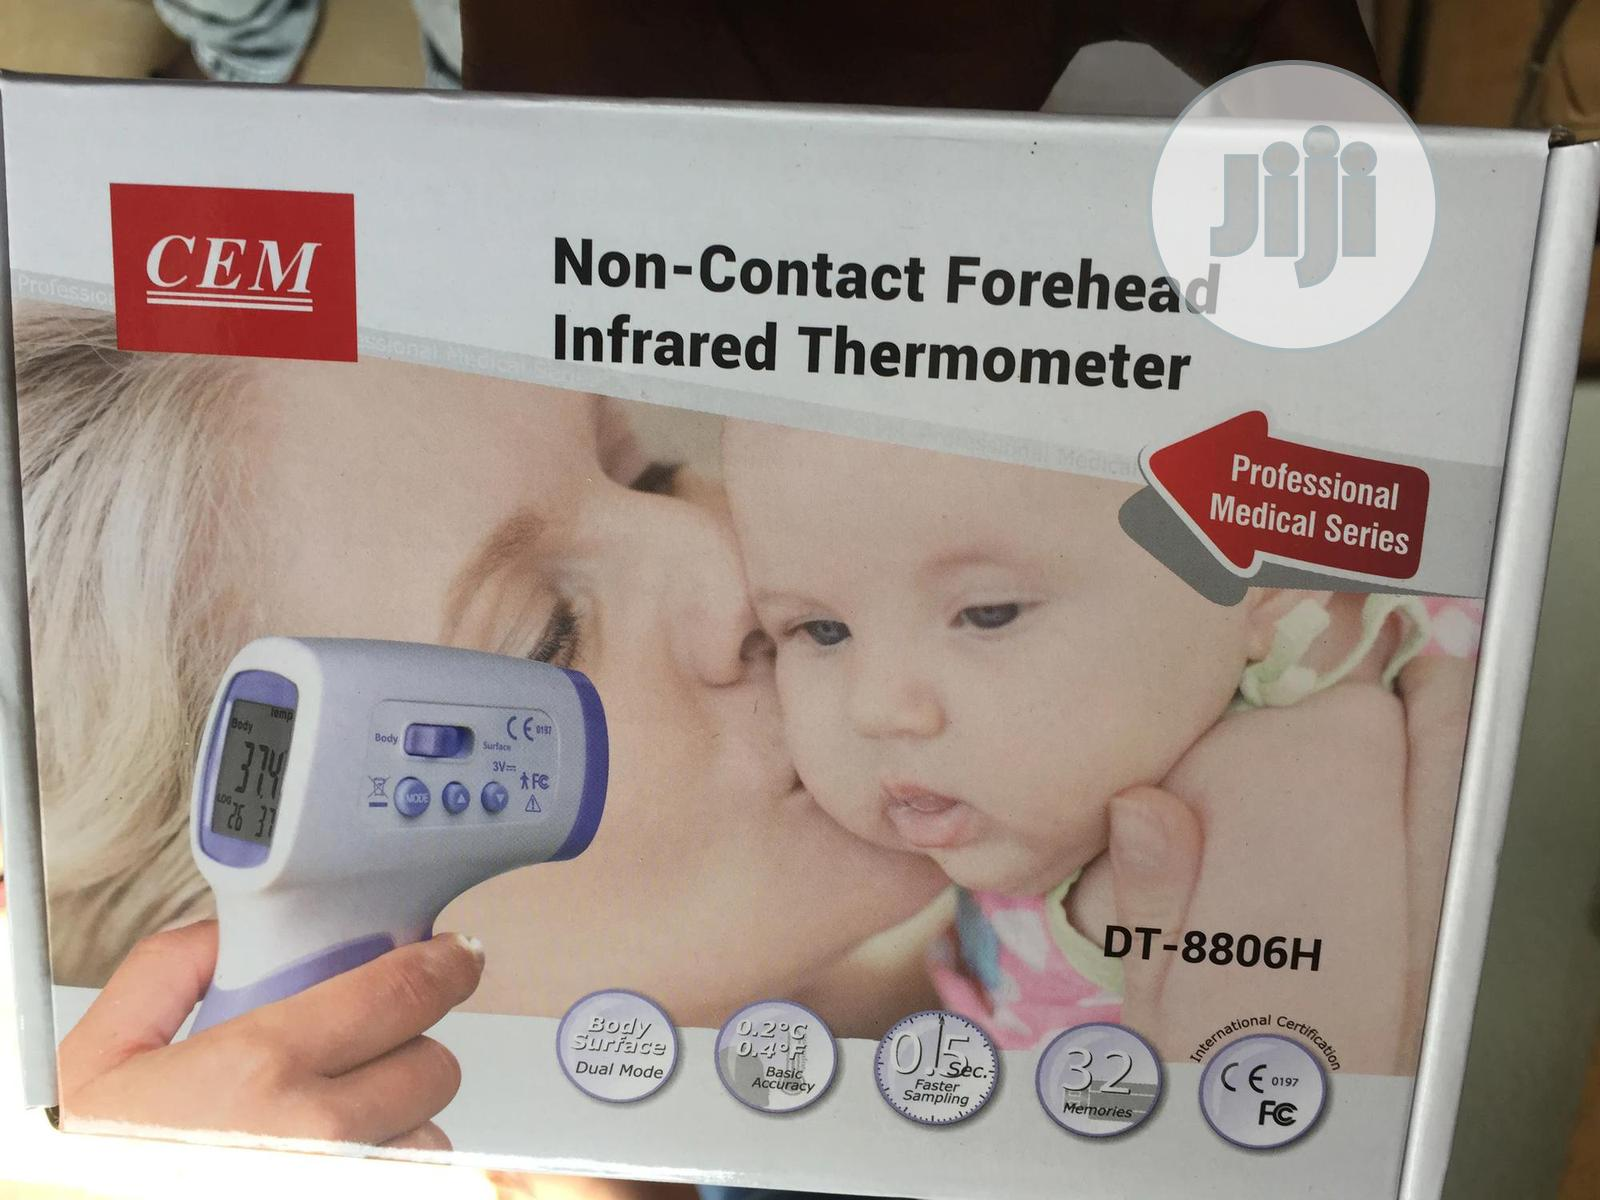 Non Contact Forehead Infrared Thermometer